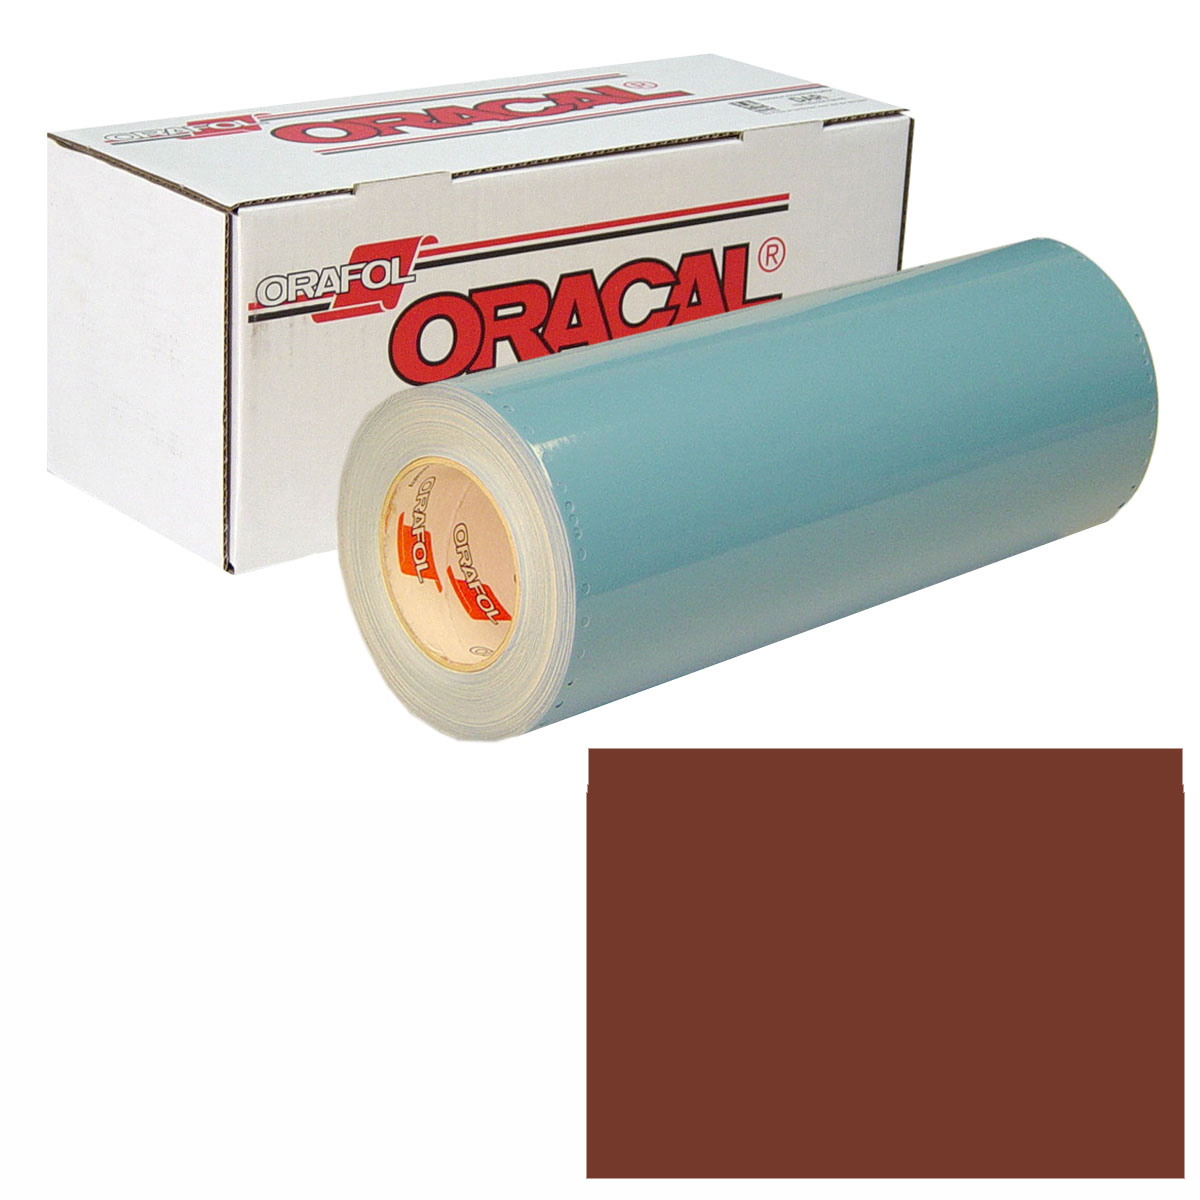 ORACAL 751 30in X 50yd 079 Red Brown